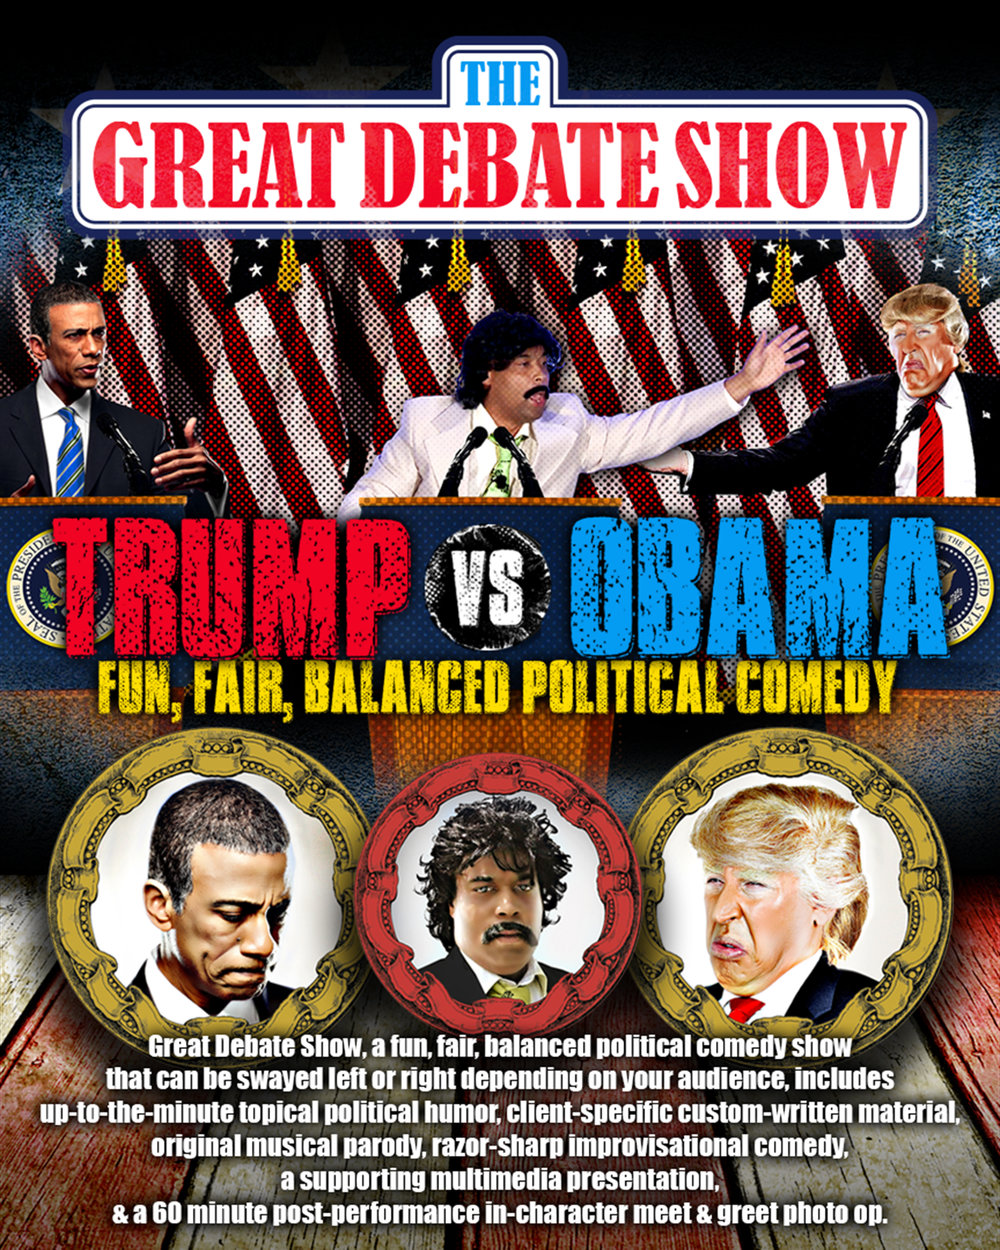 The-Great-Debate-Poster-8x10-300dpi-Agent-Friendly.jpg